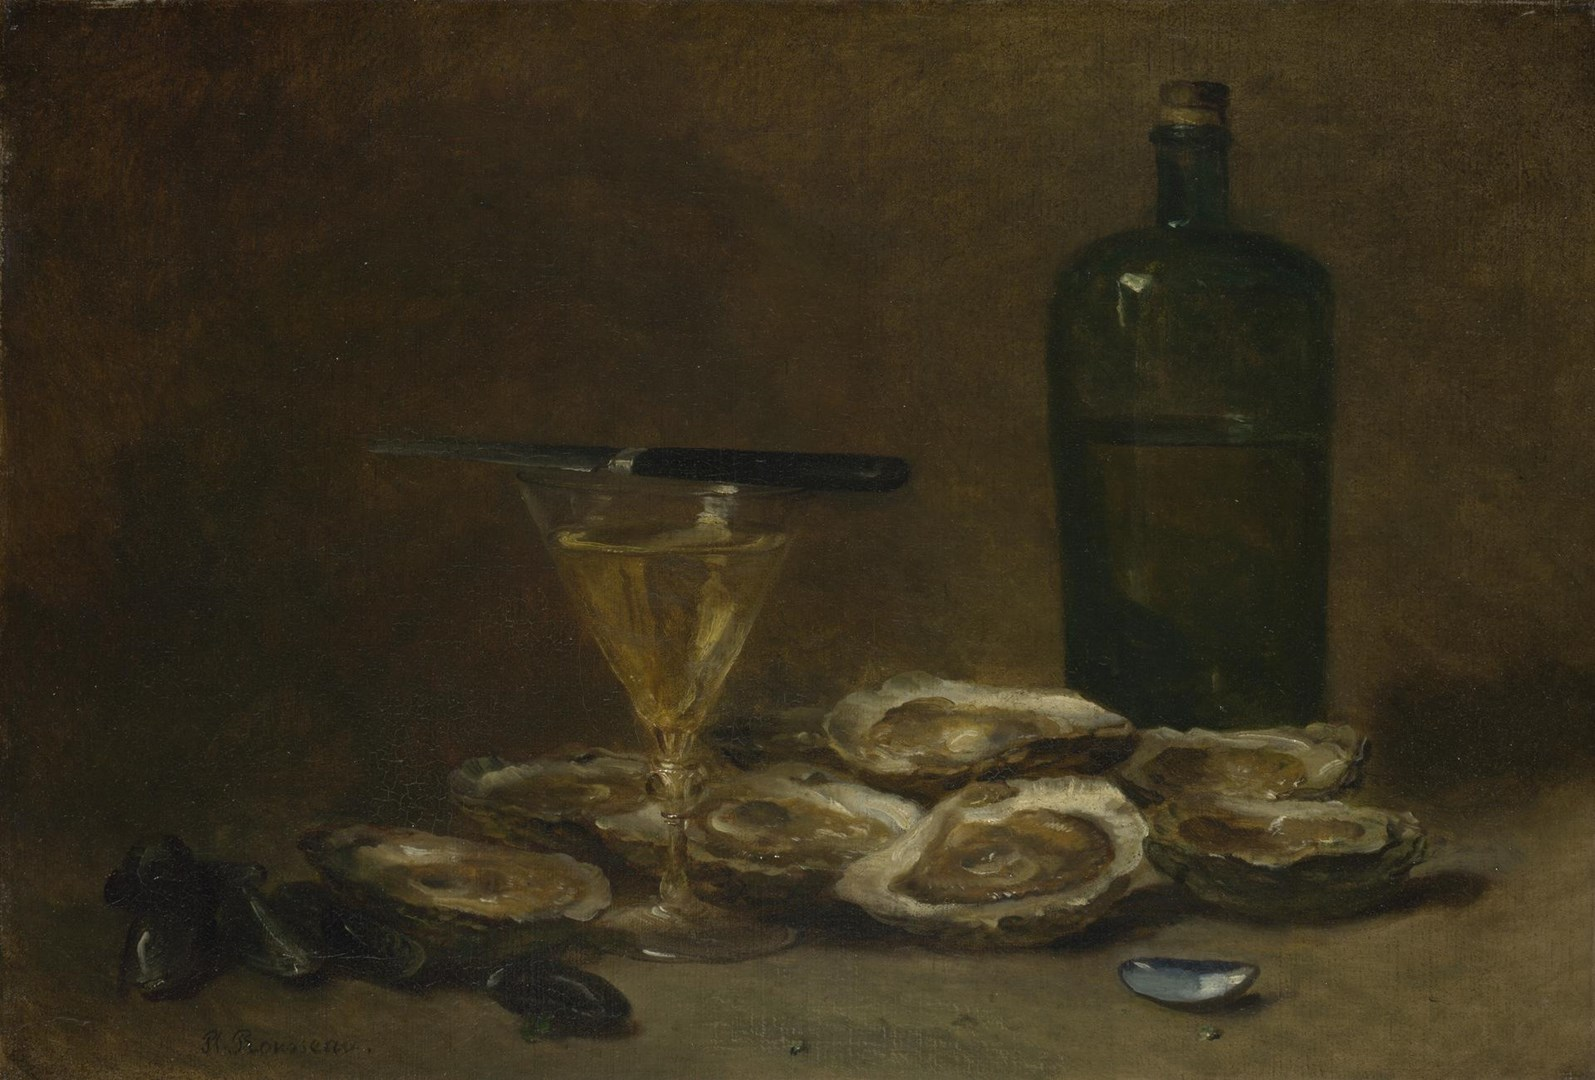 Still Life with Oysters by Philippe Rousseau